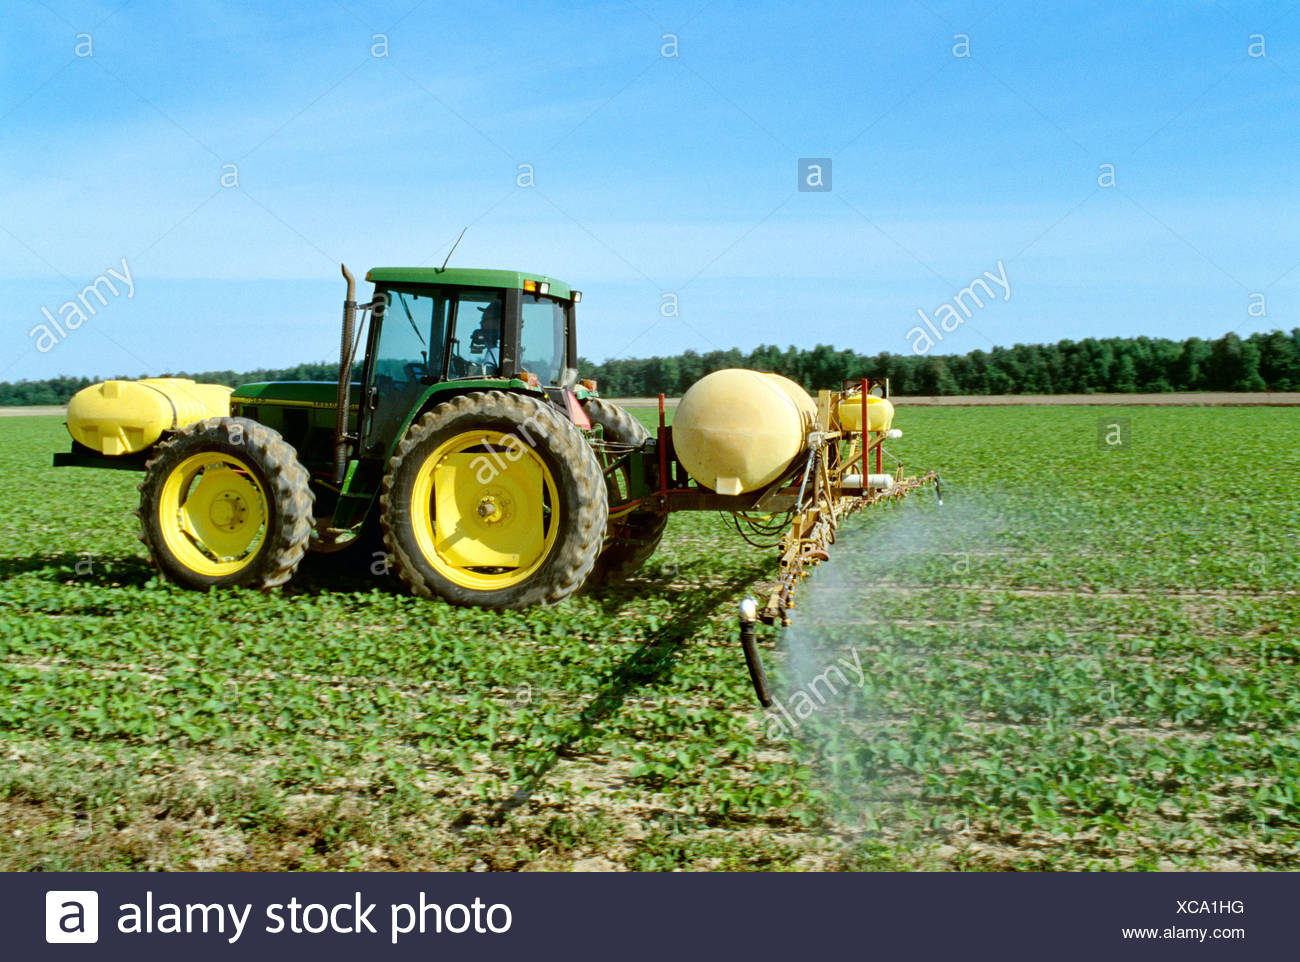 Agriculture - Chemical application, applying post emergence